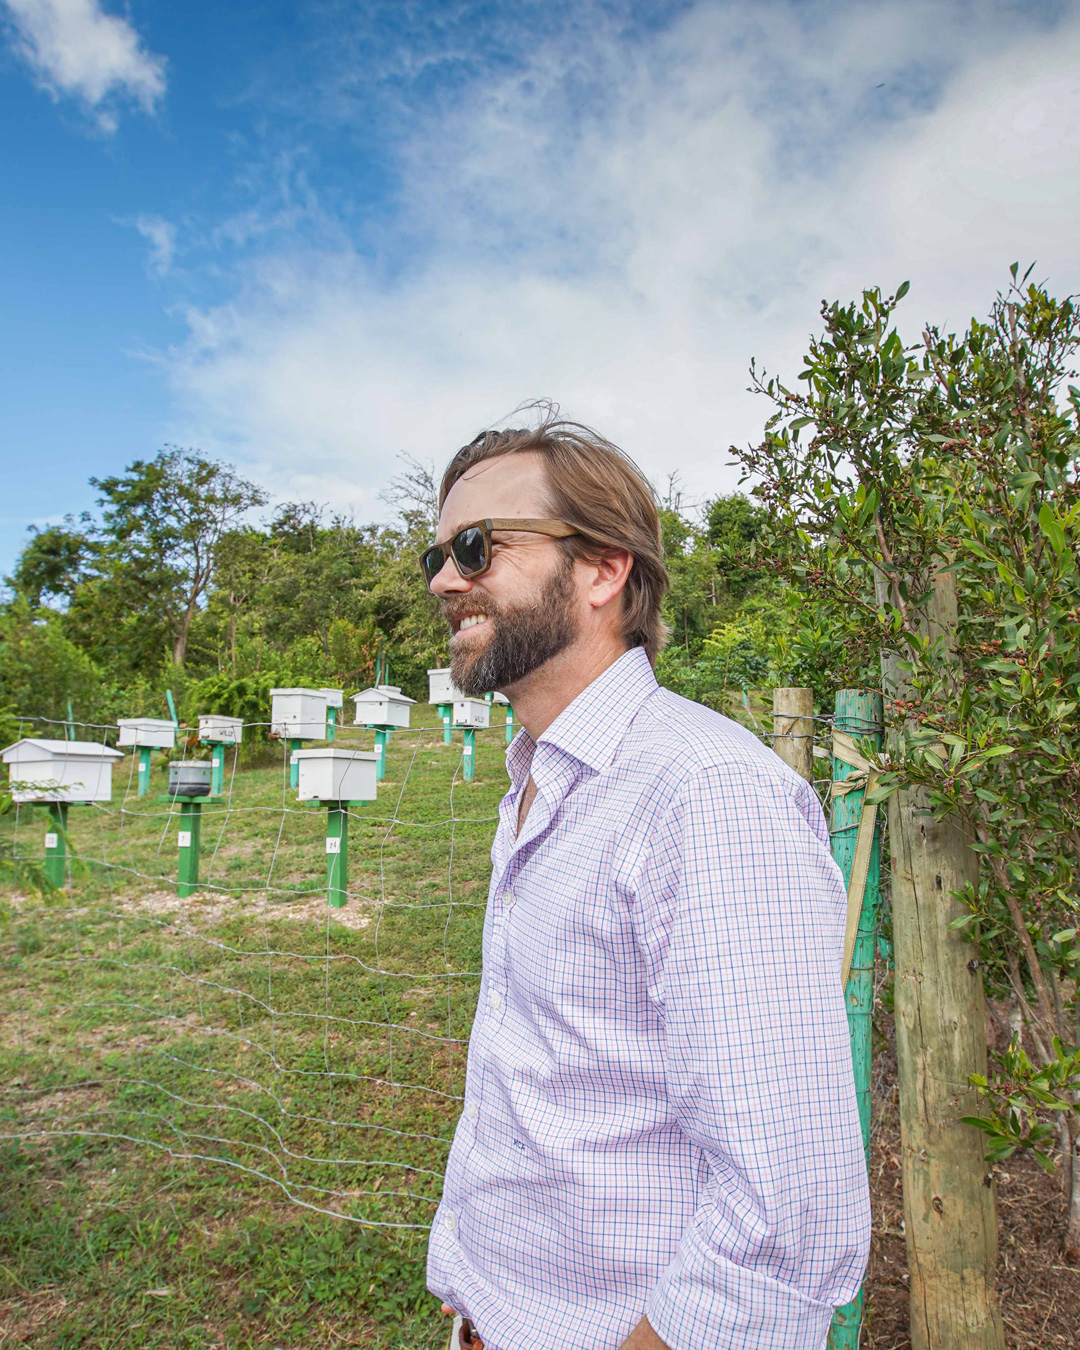 NOLADrinks Show – Honeybee Conservation – Jul20Ep1 – Matti Anttila of Dixie Southern Vodka at the honeybee conservation project in Puerto Rico.